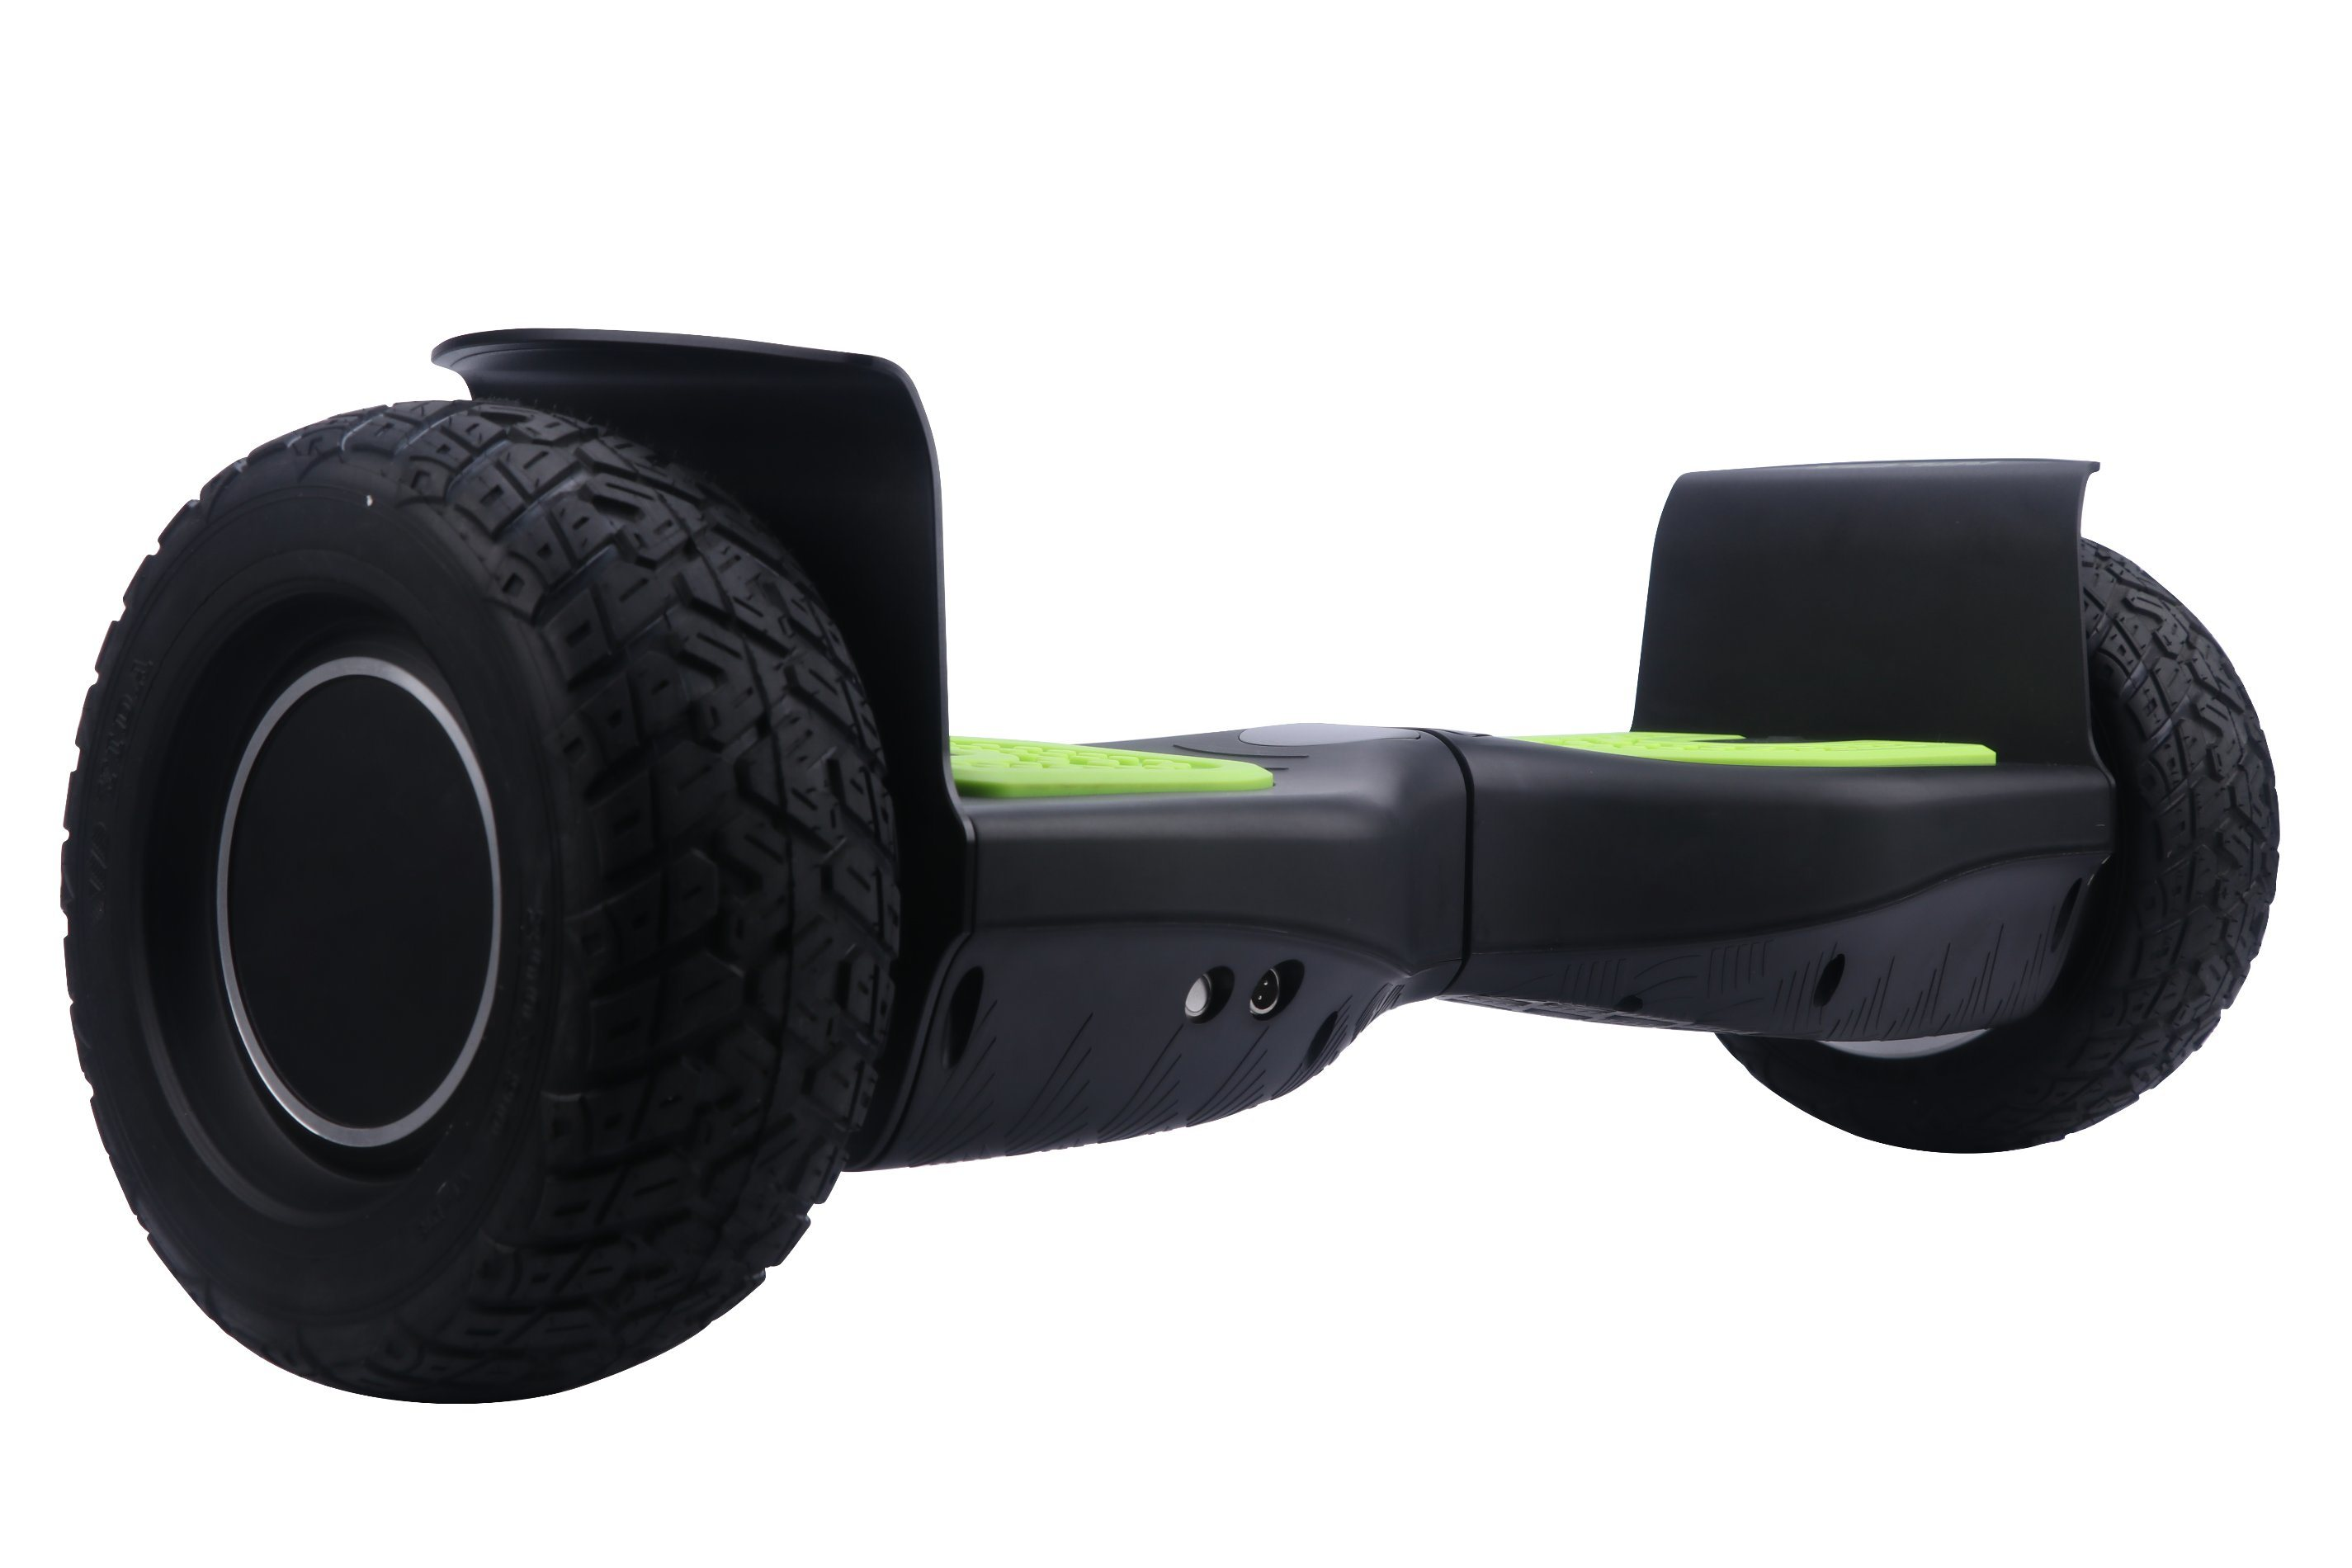 2017 New Release Two Wheel Lithium Battery Smart Balance Cross Country Electric Scooter